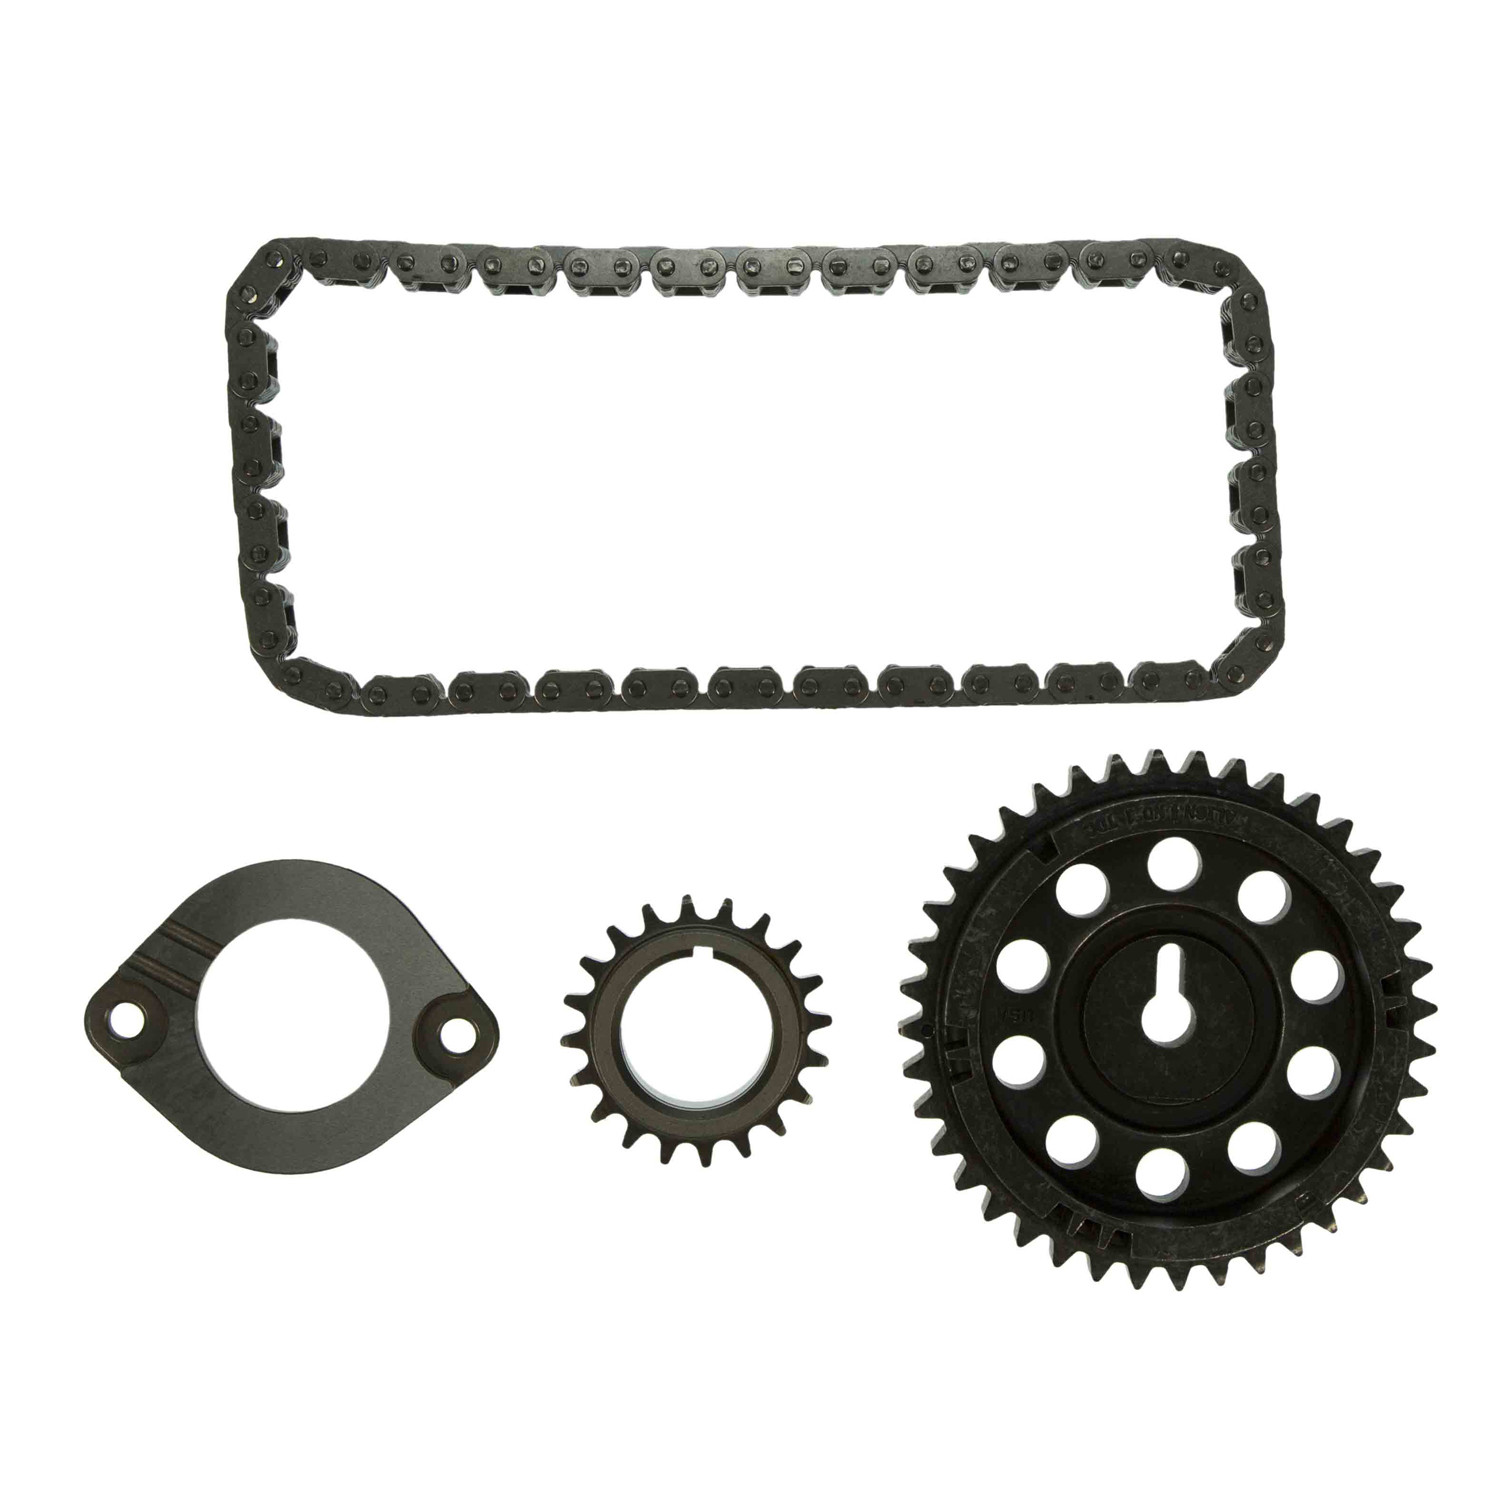 Imagen de Kit de Distribución para Plymouth Grand Voyager 2000 Marca SEALED POWER Número de Parte KT3-388S